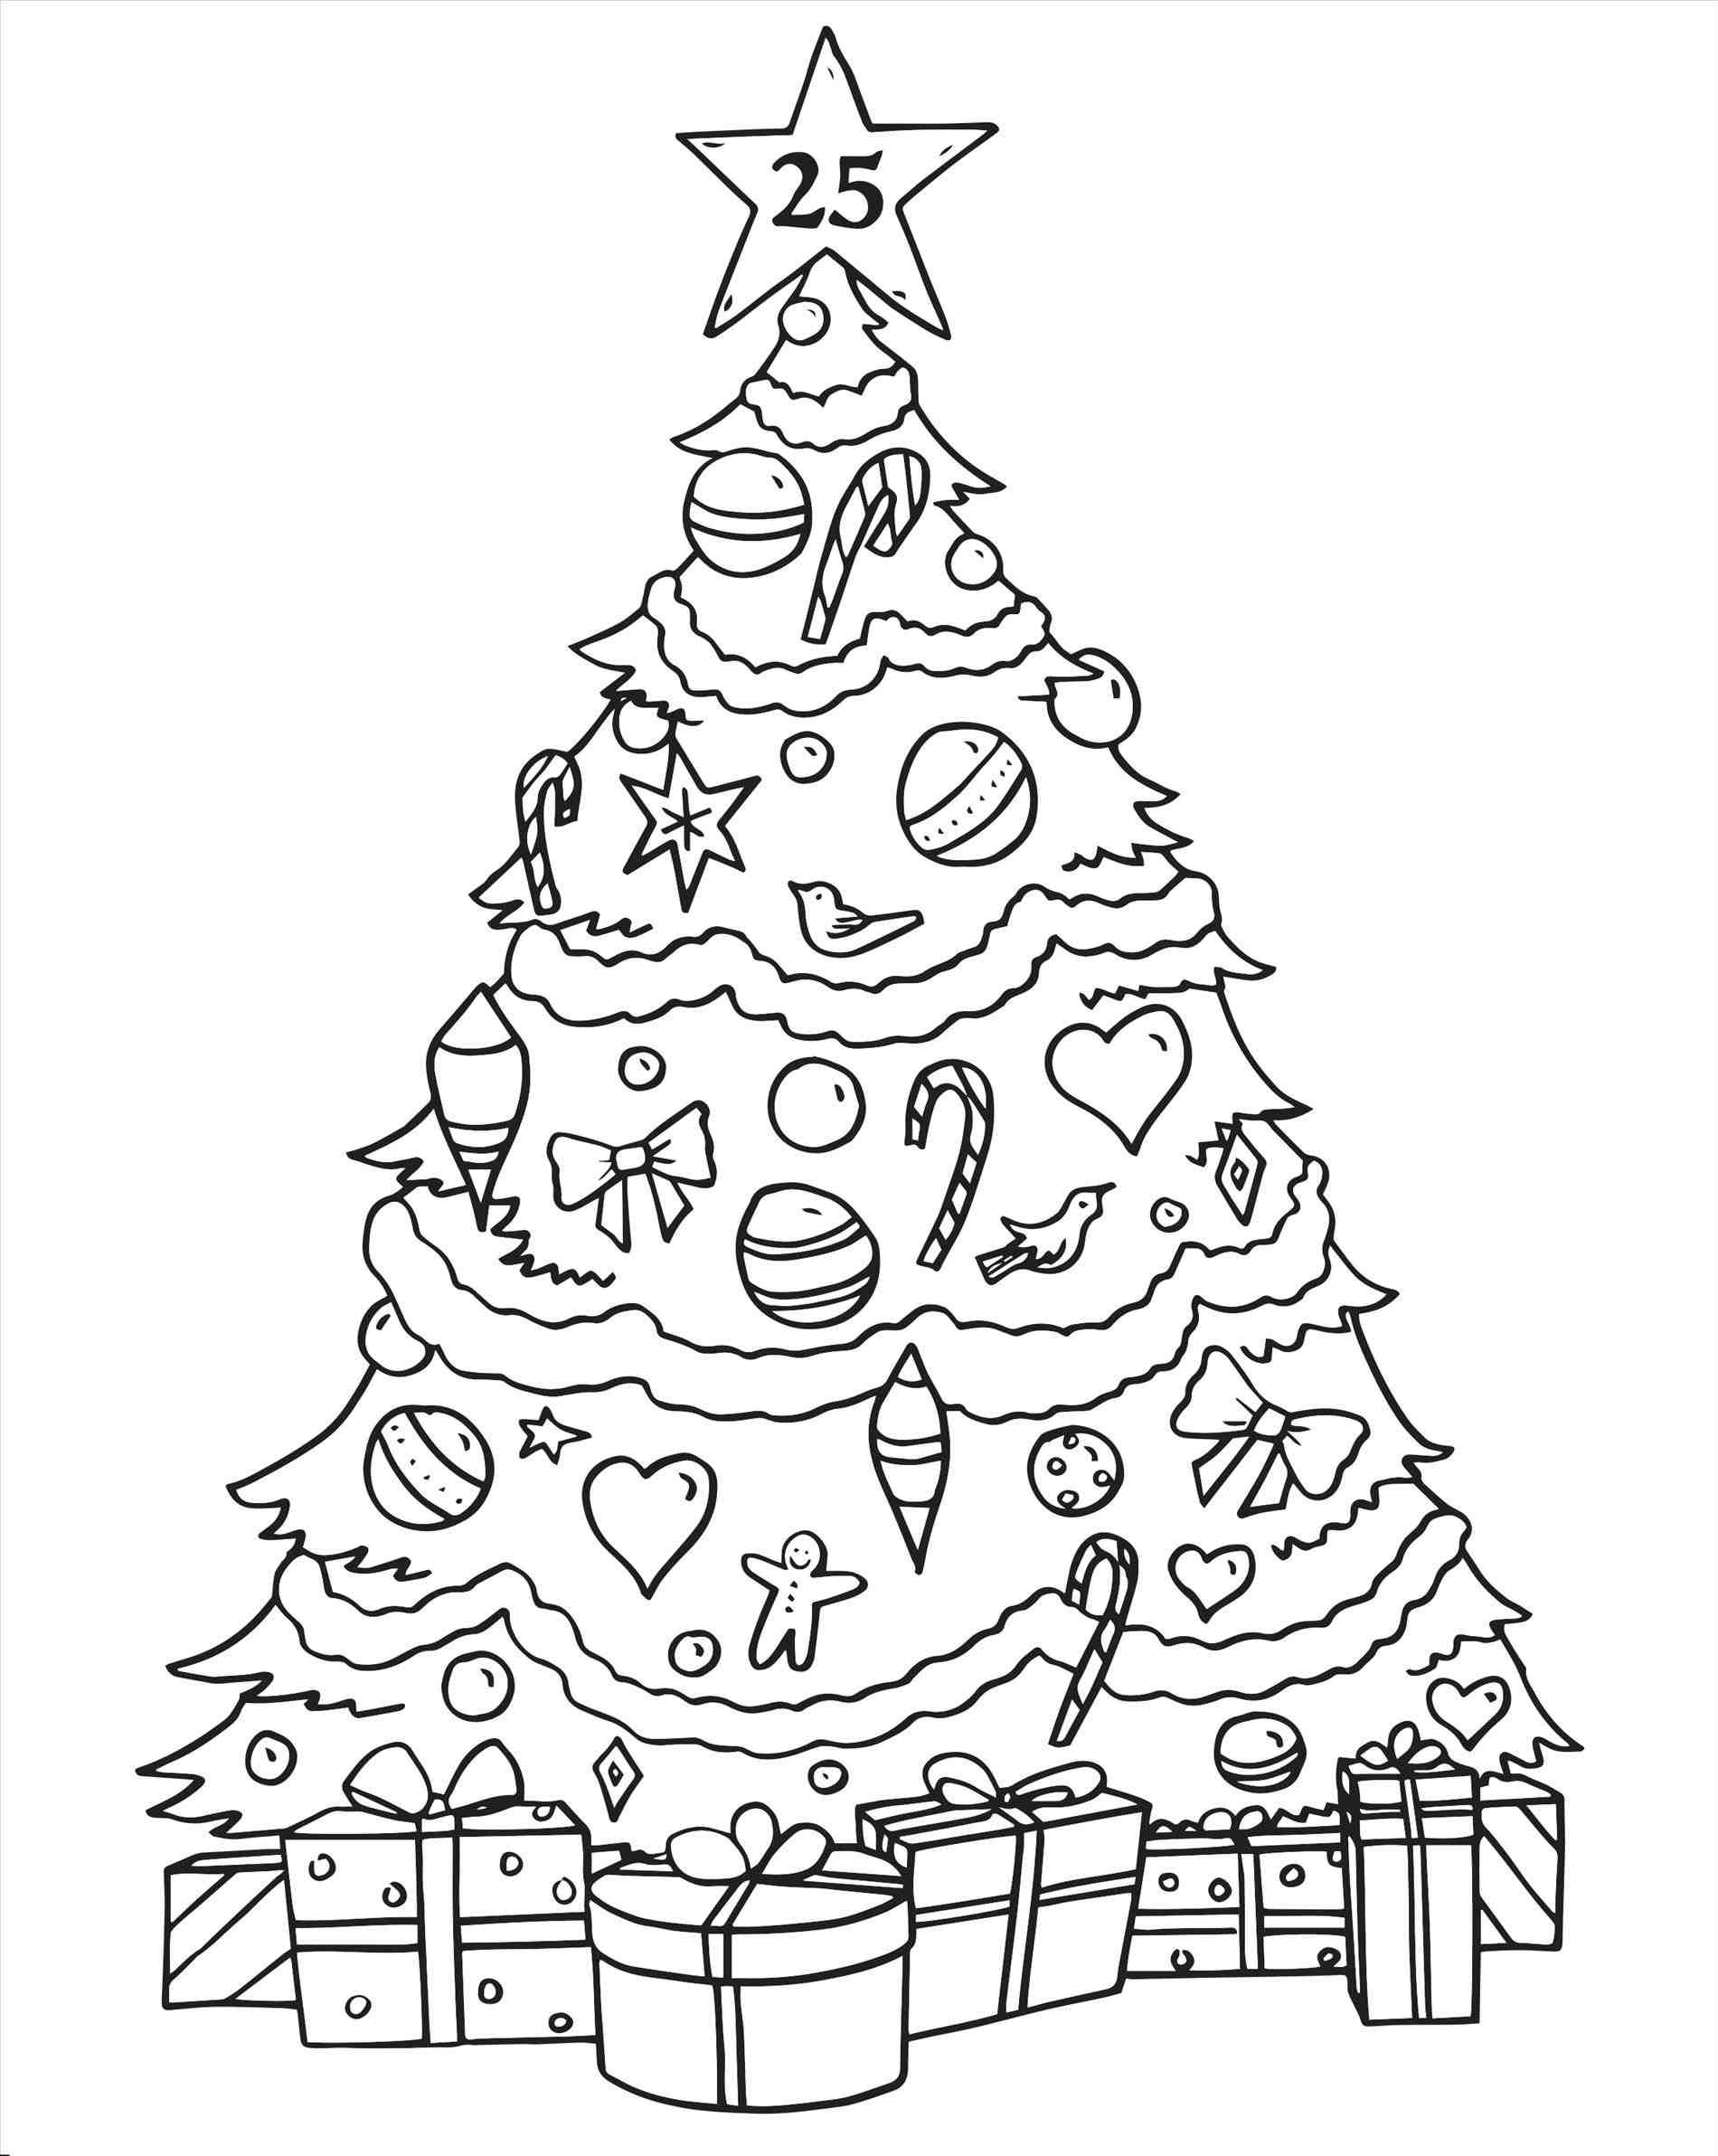 Christmas Drawing Template at GetDrawings.com | Free for personal ...